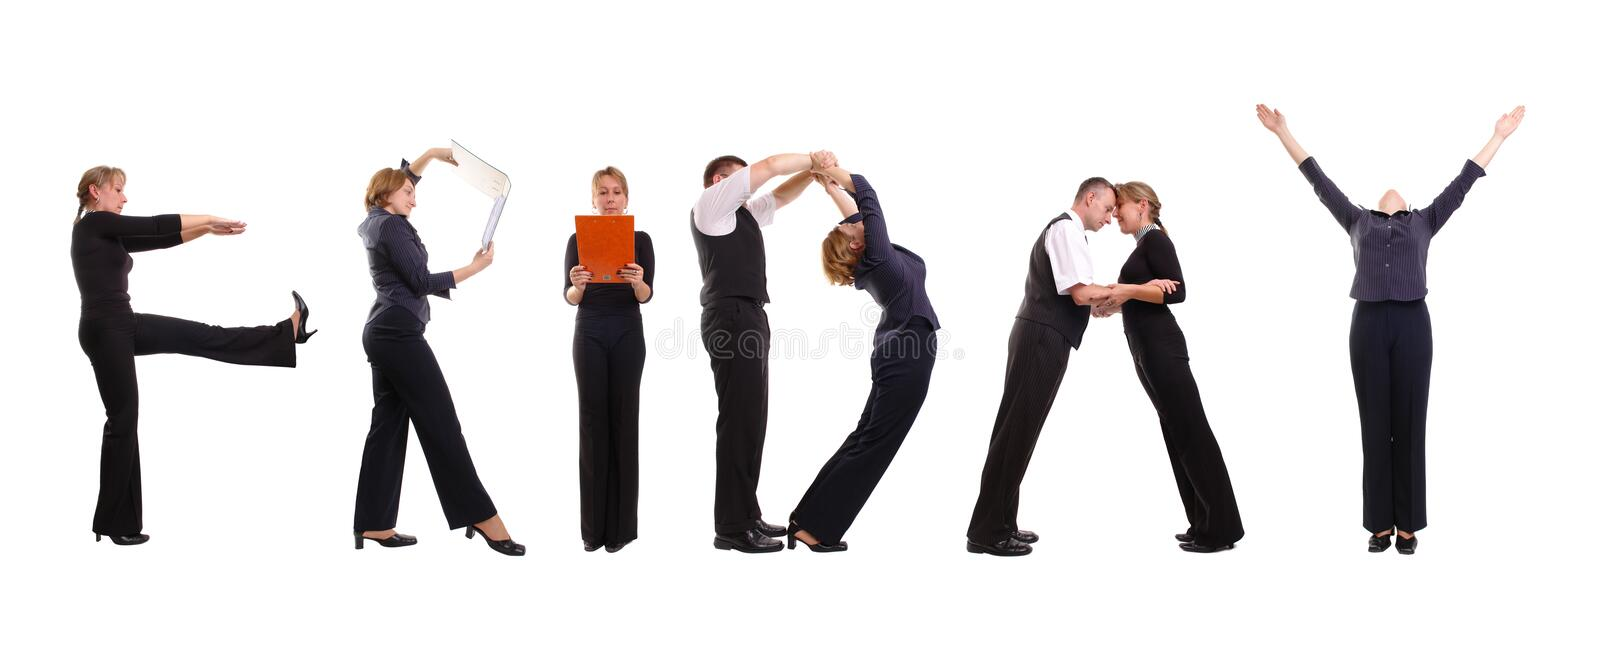 Download Friday business group stock image. Image of business, alphabet - 3468547